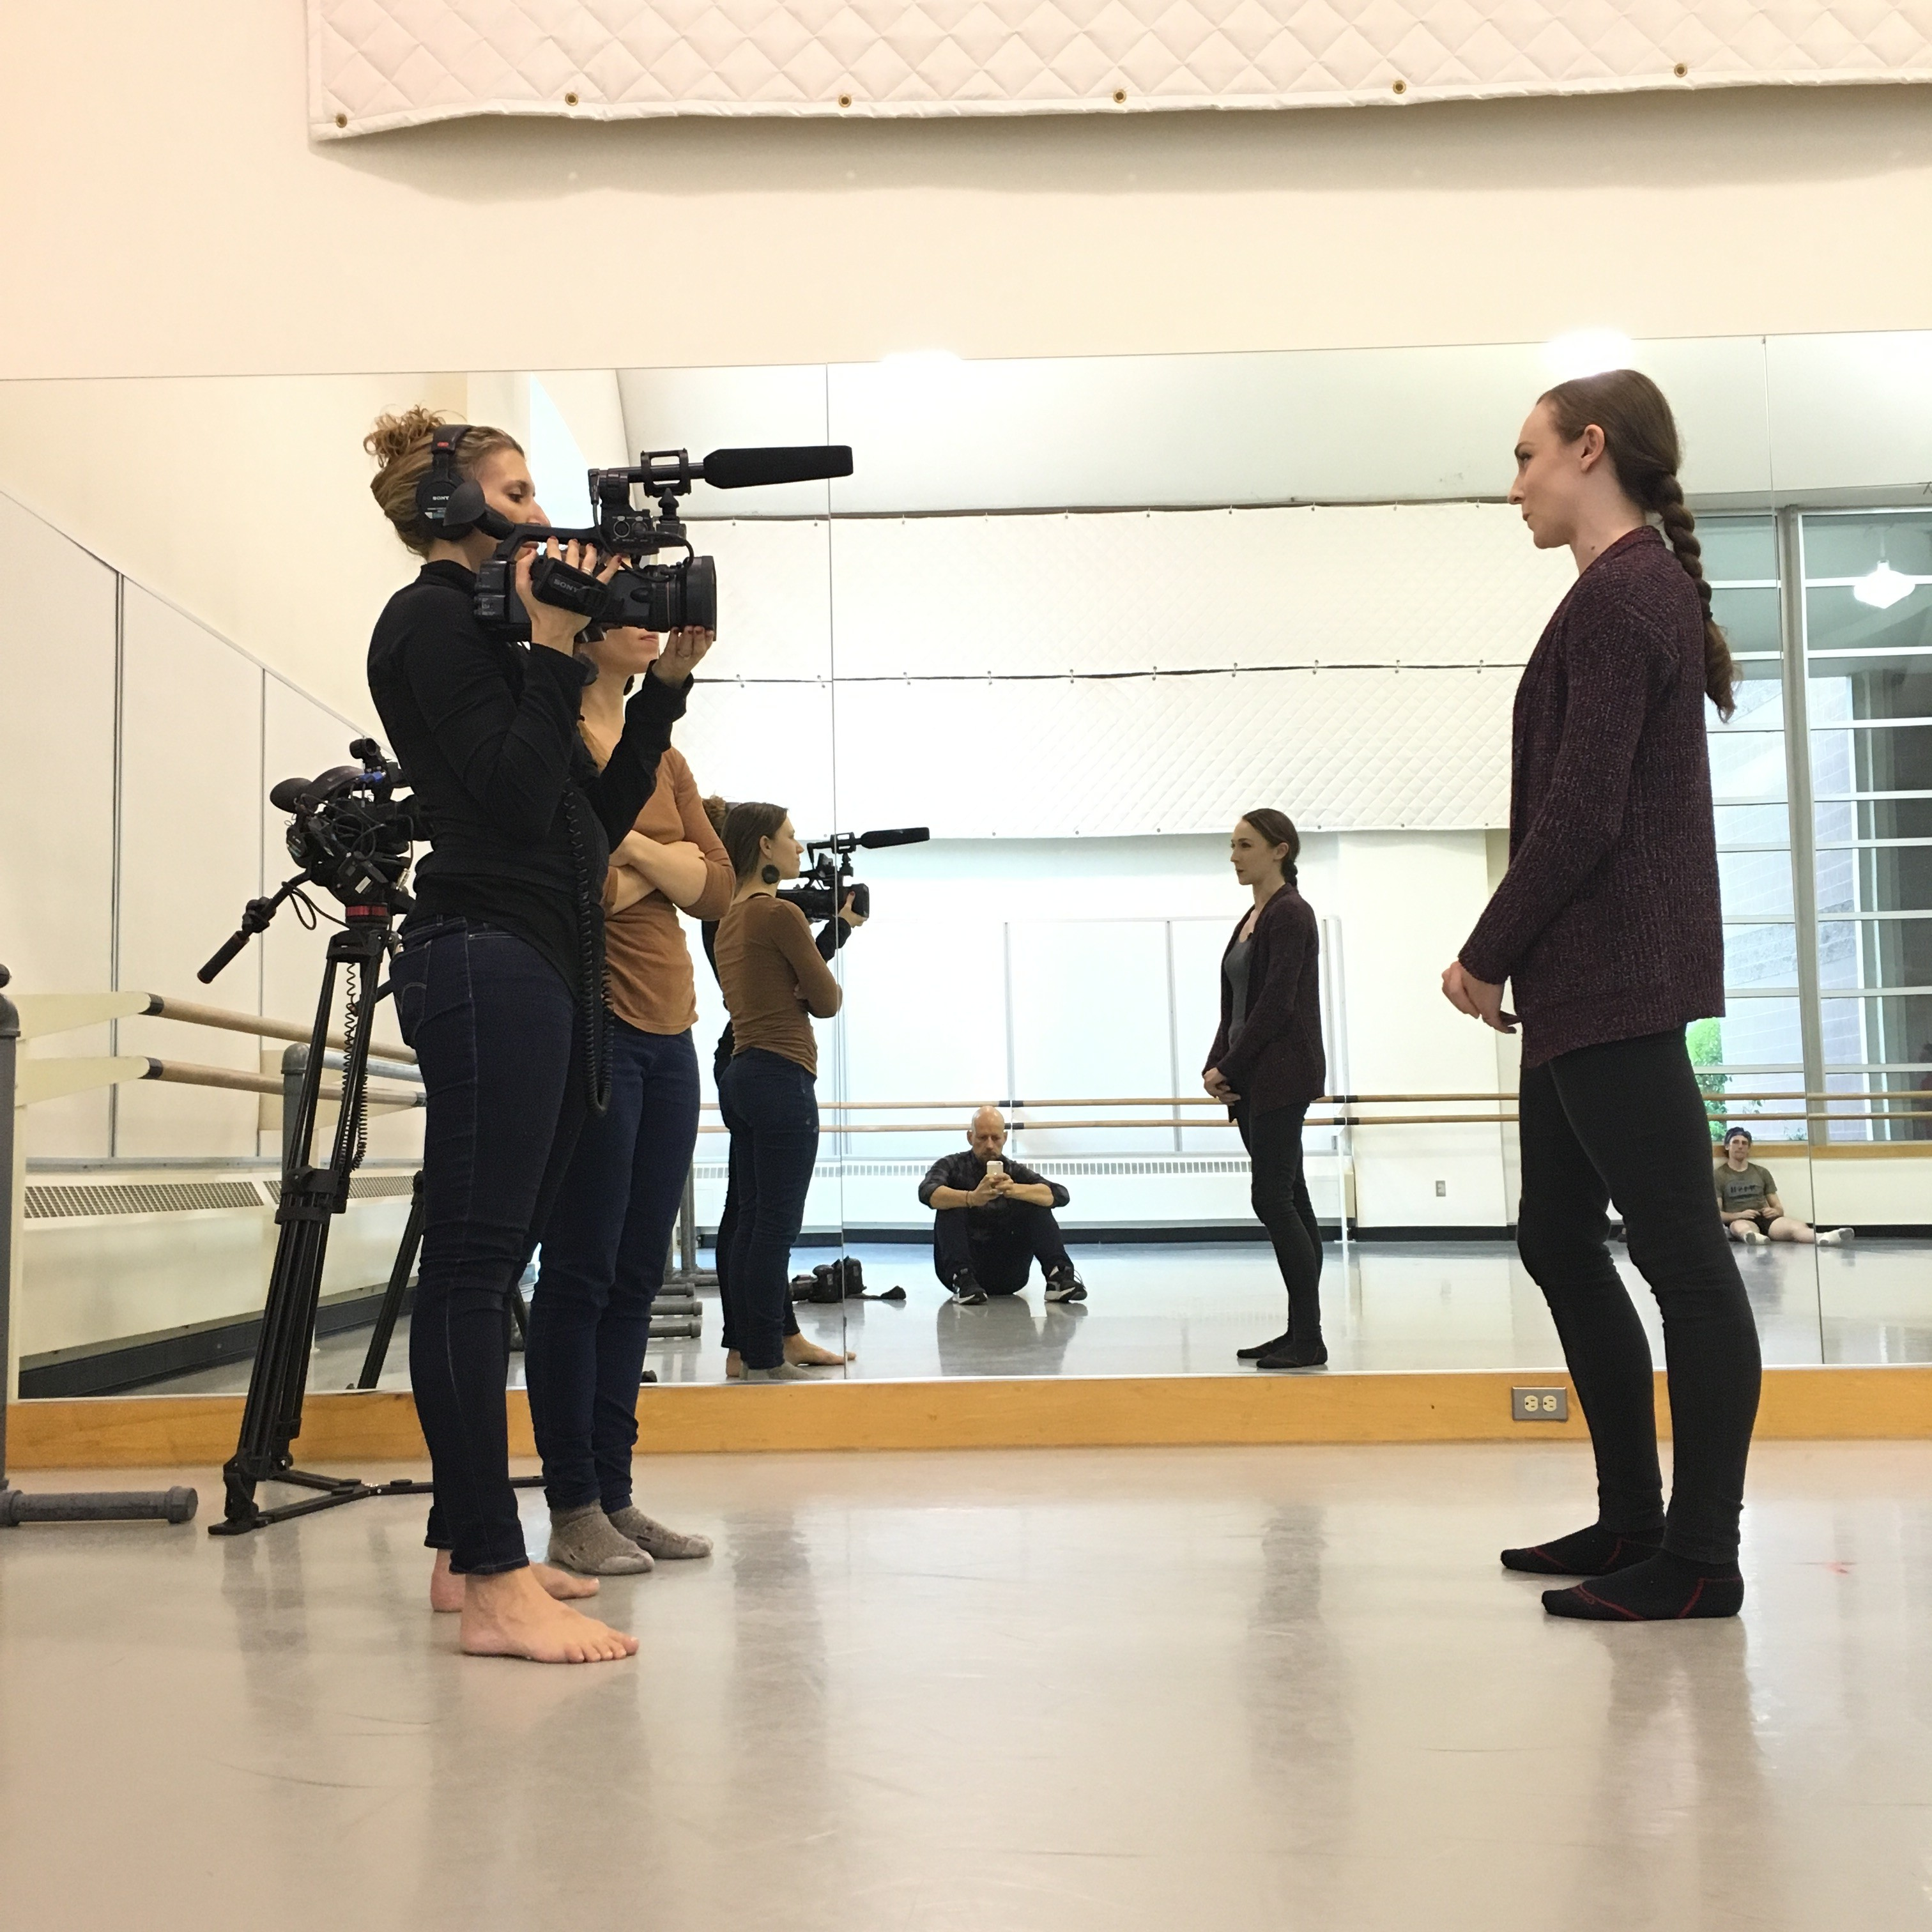 New Dance Documentary: Behind the Scenes with No Dominion Film